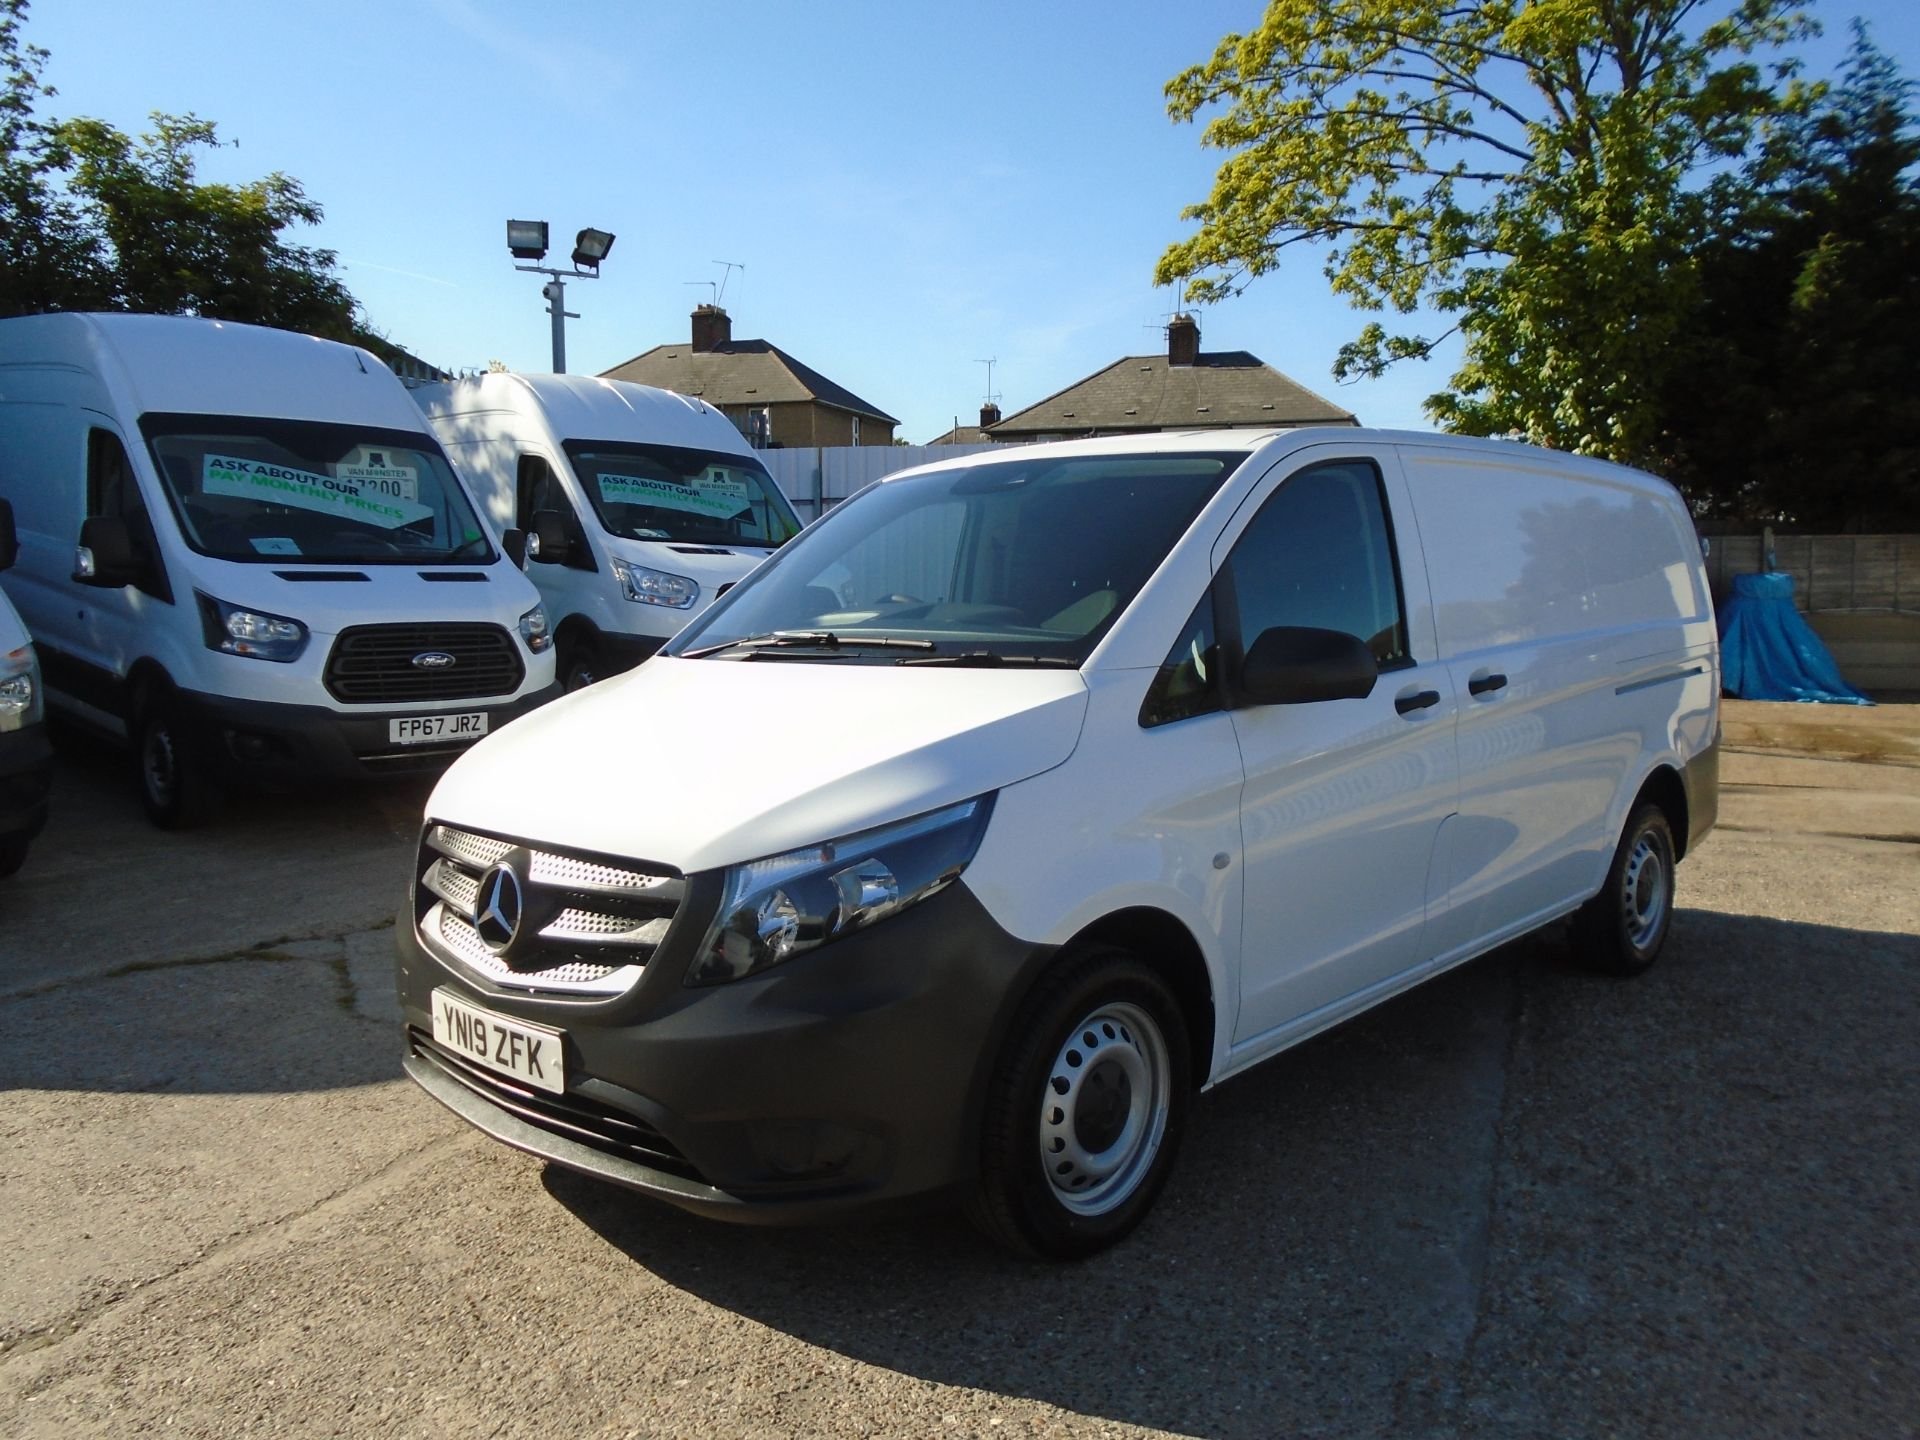 2019 Mercedes-Benz Vito 111Cdi Van Euro 6 Massive specification A/C Air Con, Delivery Miles Only (YN19ZFK) Image 3